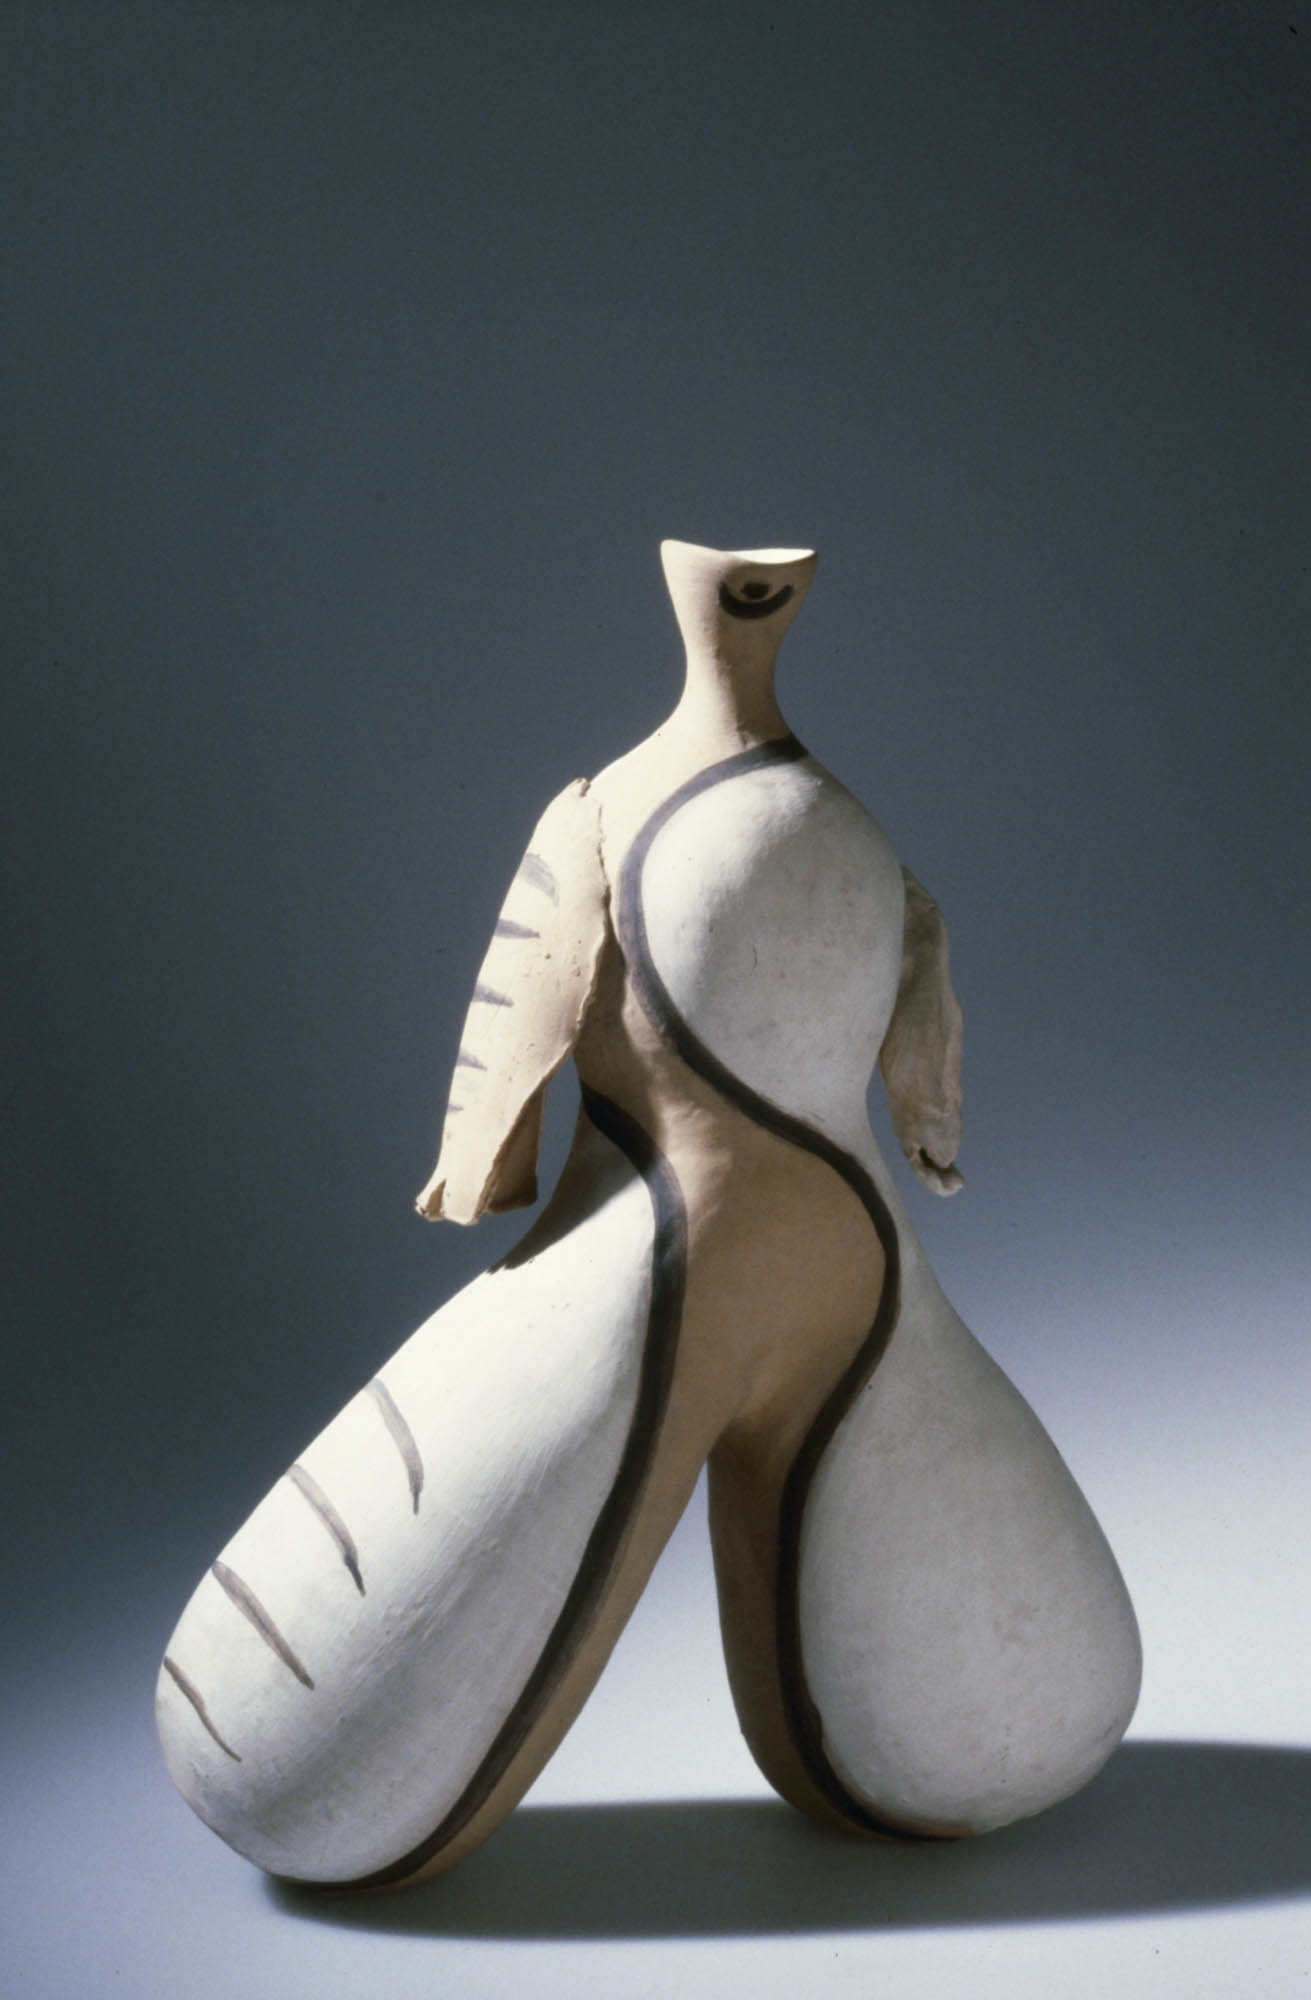 Gelber Vogel Margrit Linck-Daepp Vessel sculpture